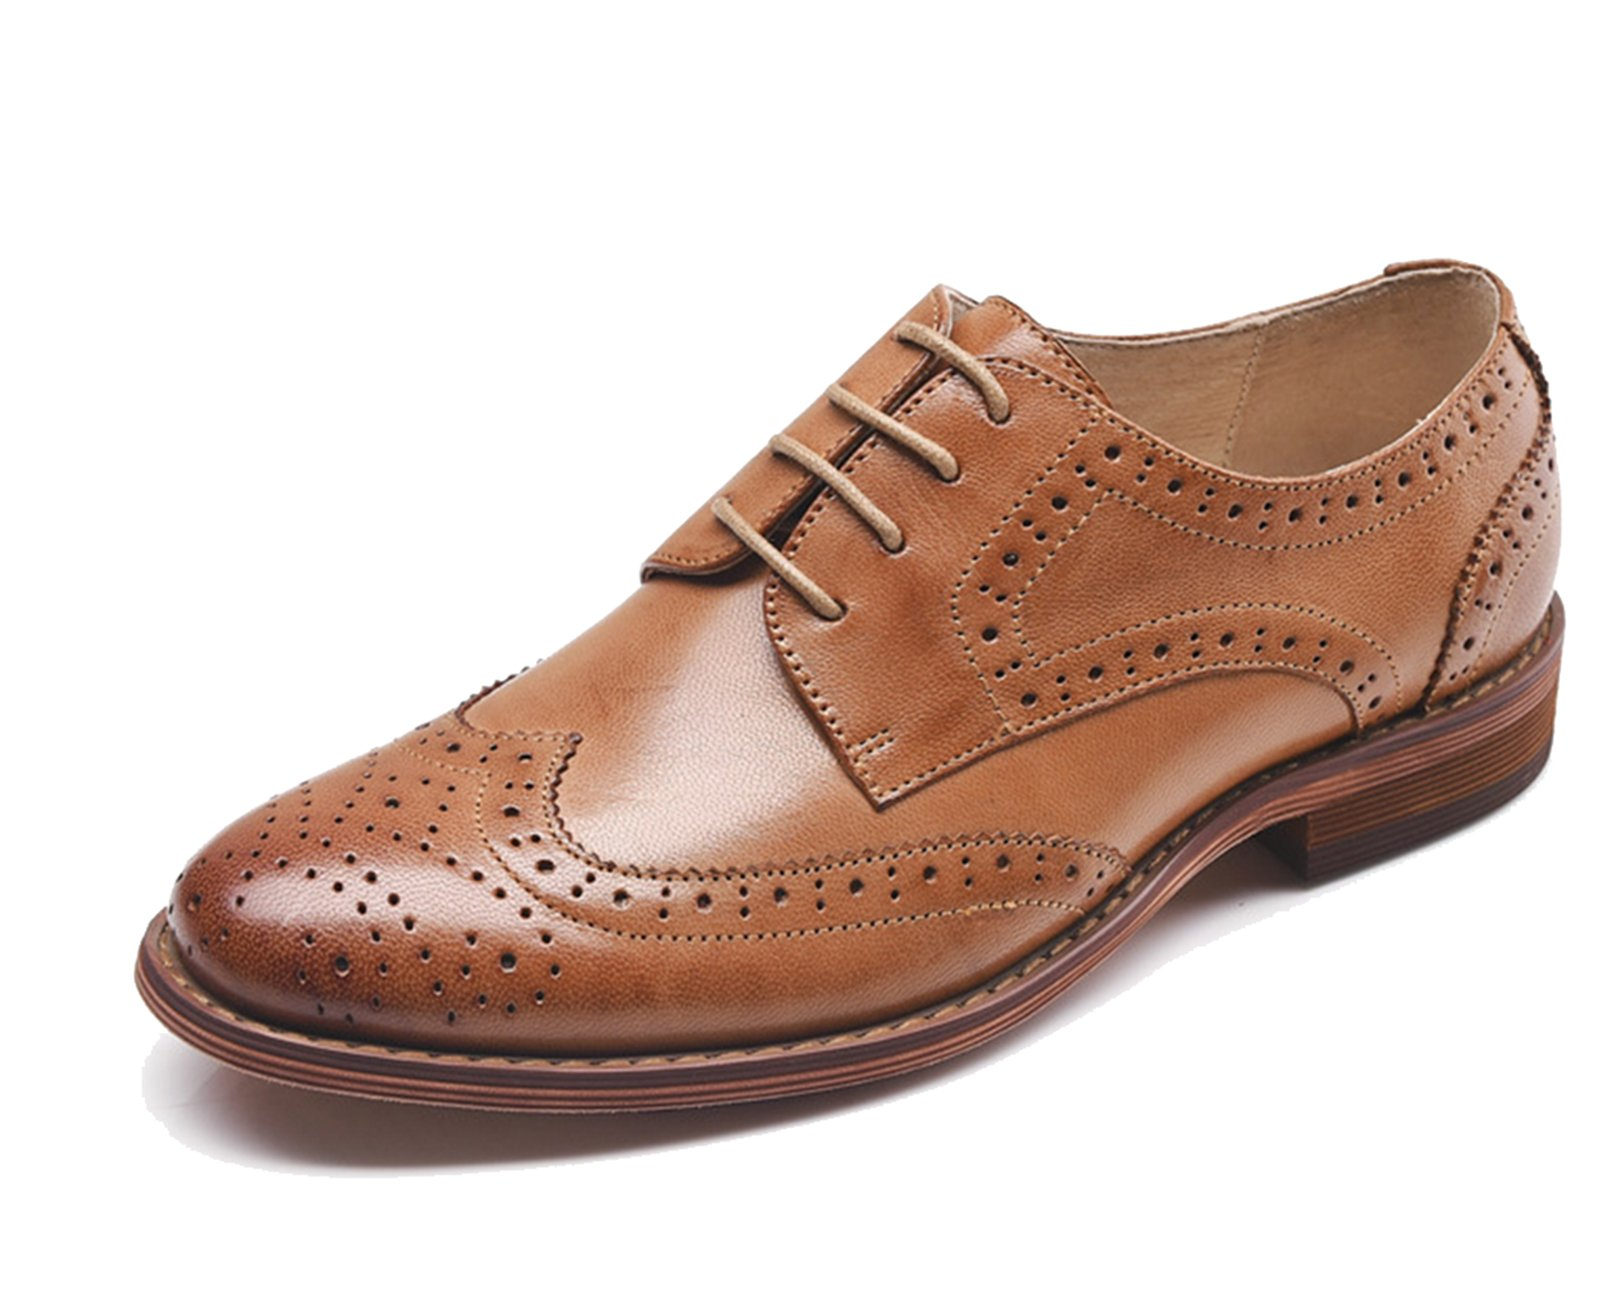 U-lite Womens Brown Perforated Lace-up Wingtip Leather Flat Oxfords Vintage Oxford Shoes 7 br